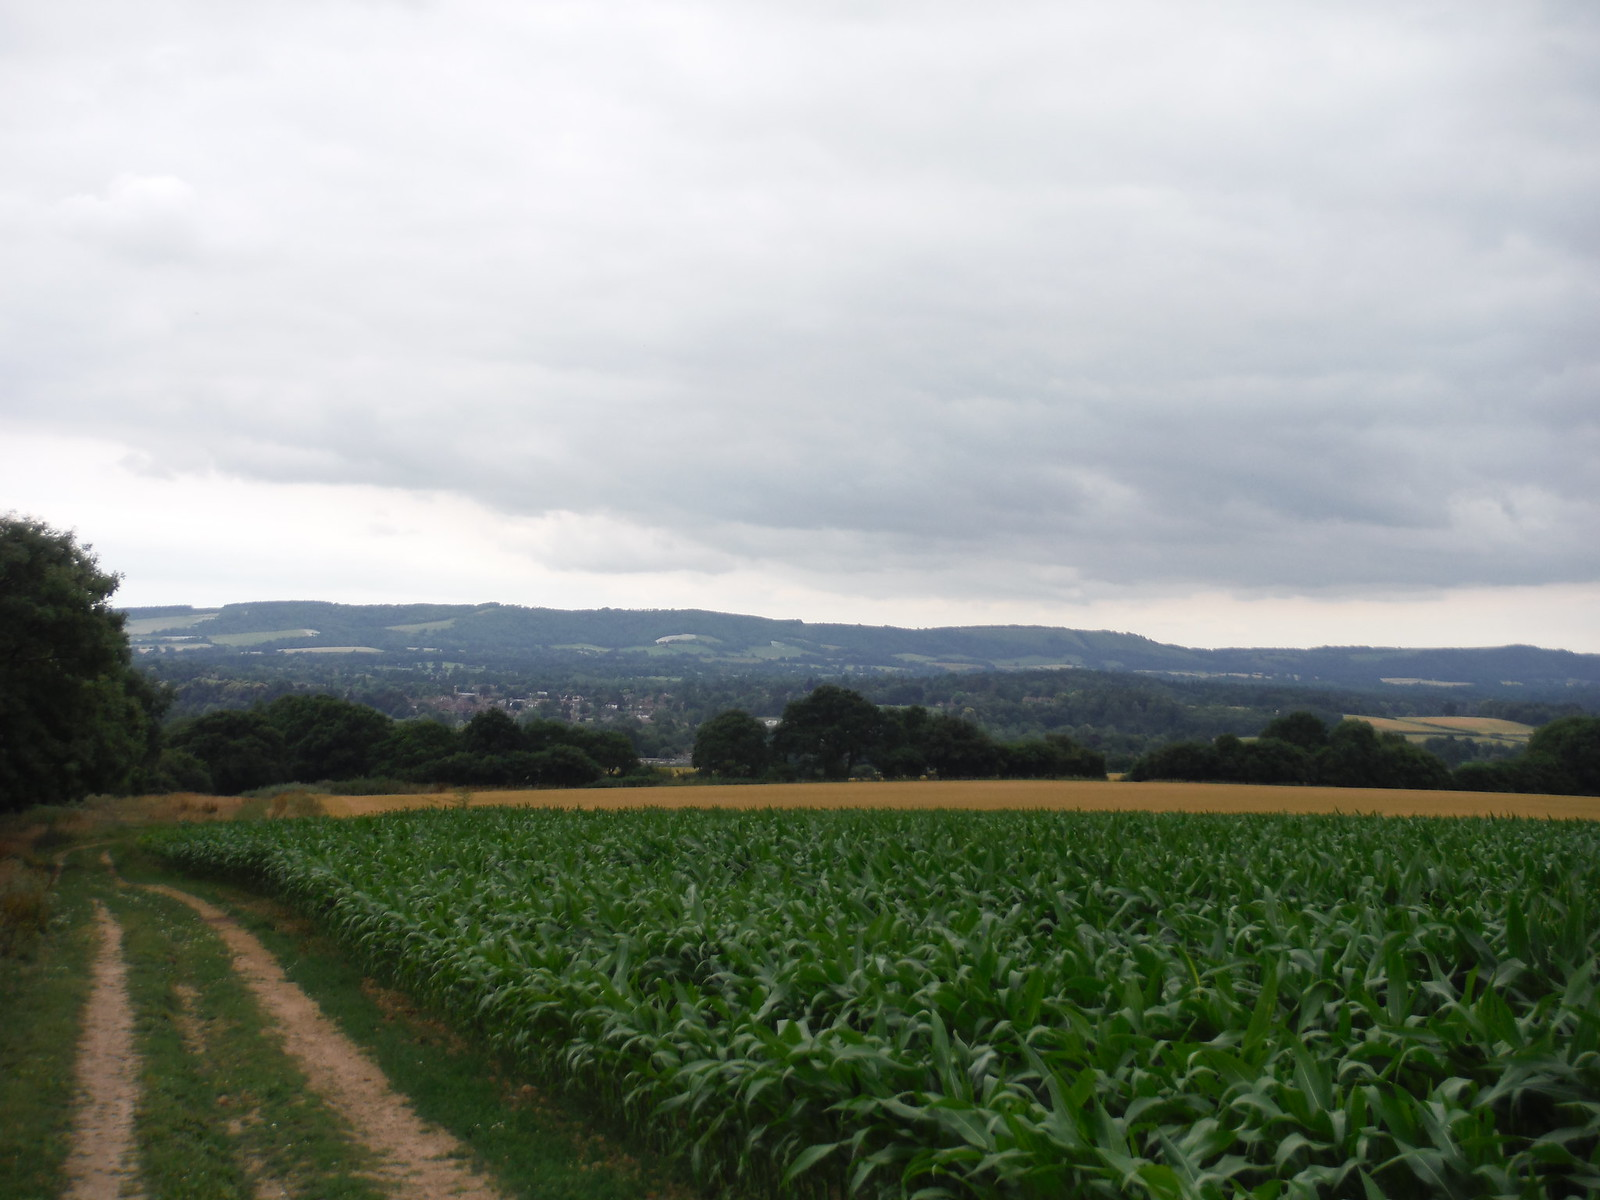 South Downs from field north of Easebourne SWC Walk 218 Haslemere to Midhurst (The Midhurst Way)